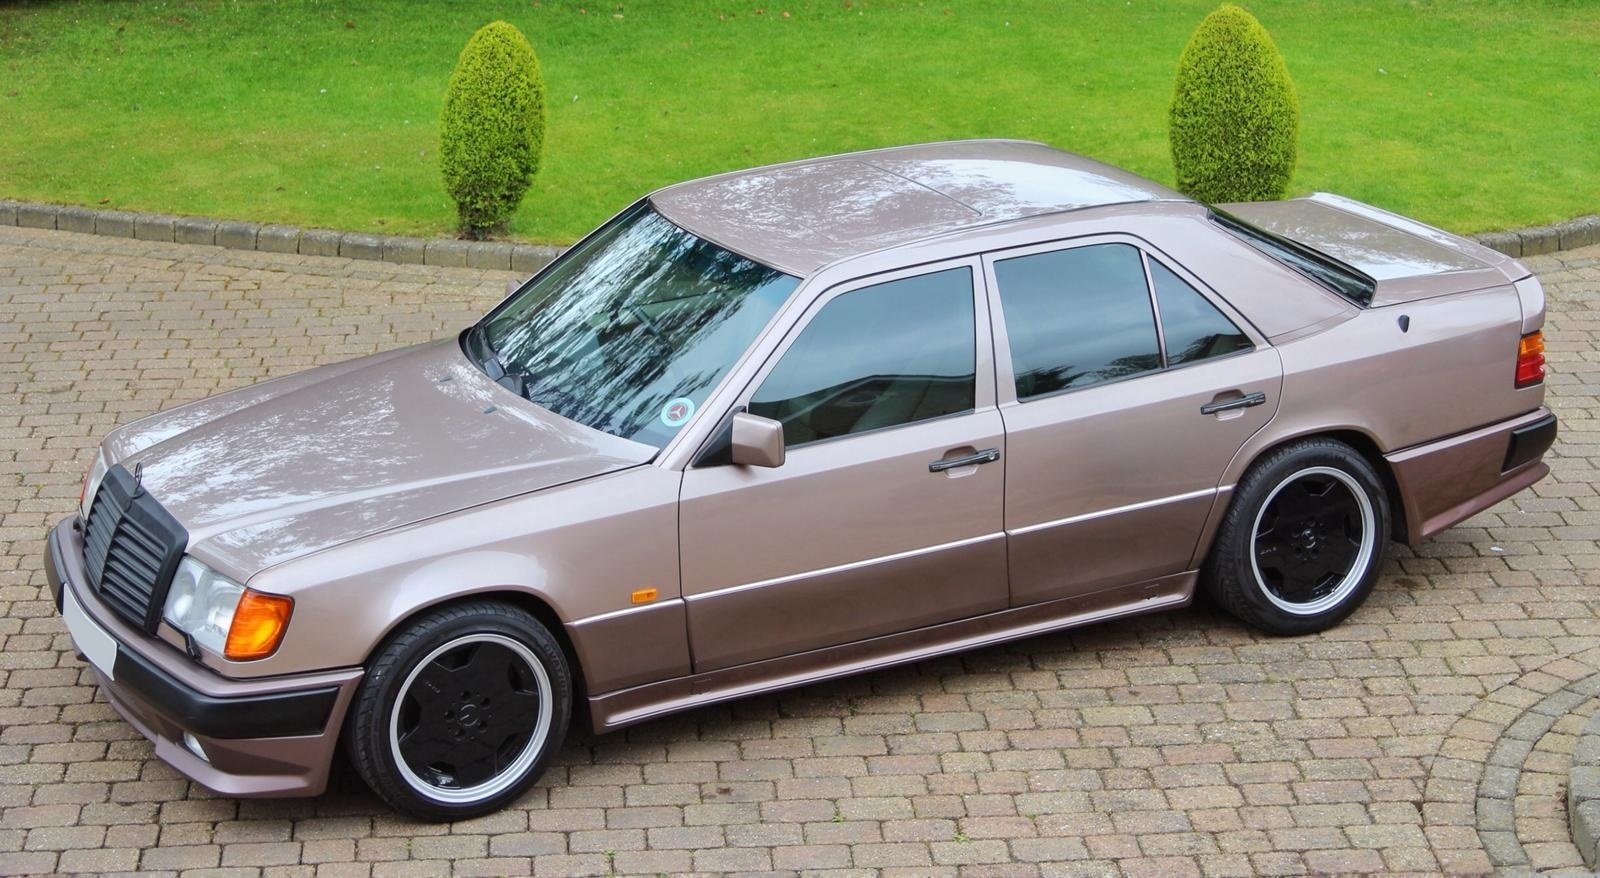 1993 RARE MERCEDES 320E - PRE MERGER AMG - GEN 1 - W124 For Sale